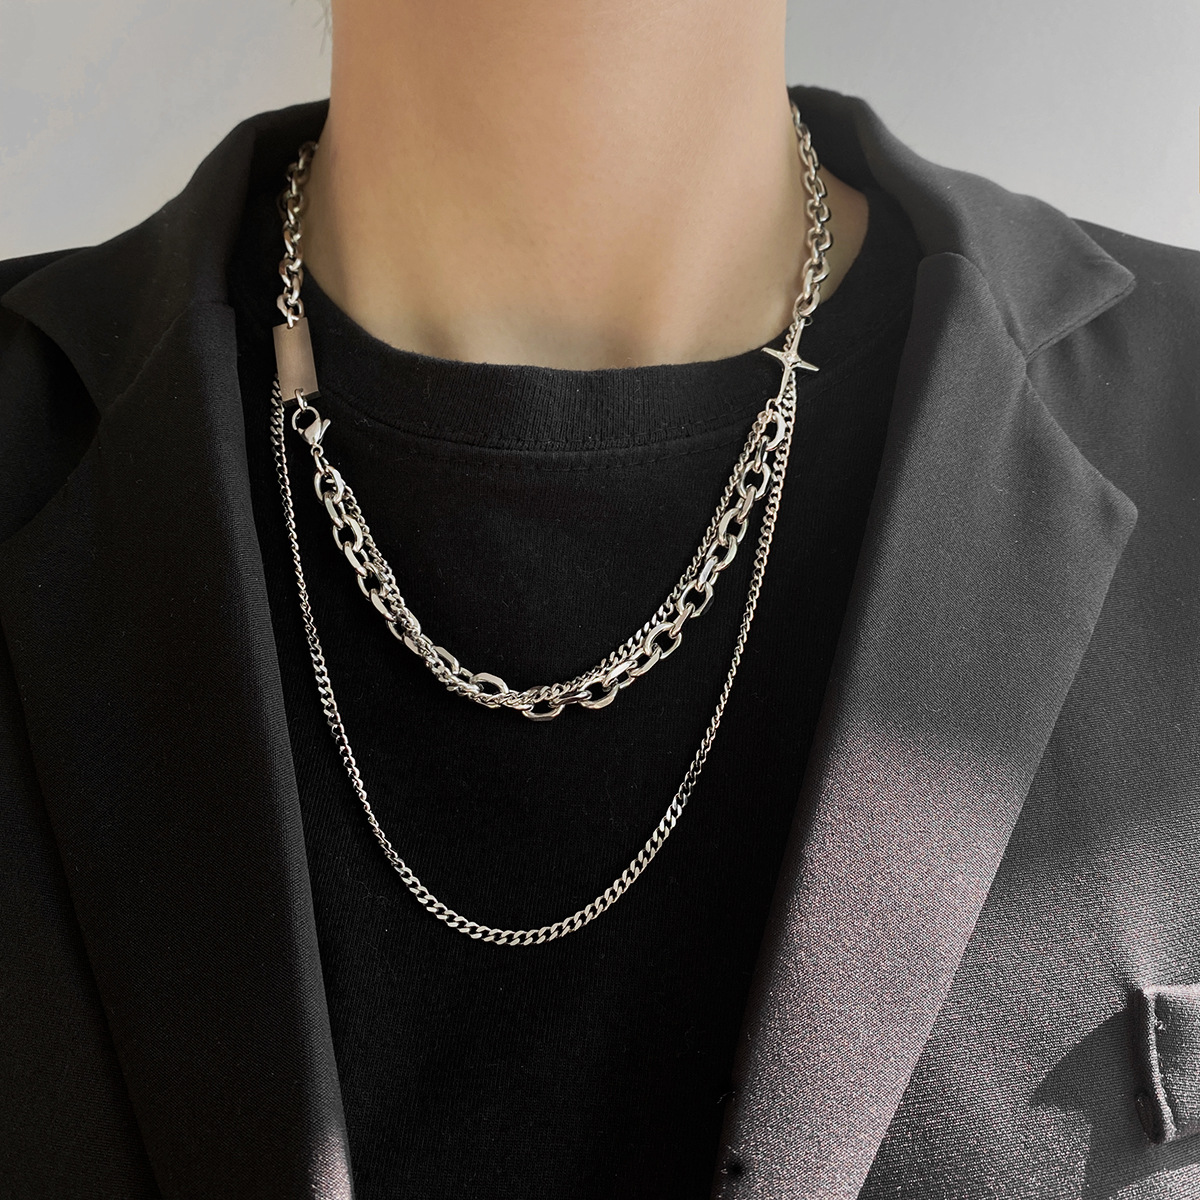 Finely Finished Double-Layered Chain Necklace for Hipster Grunge Outfits